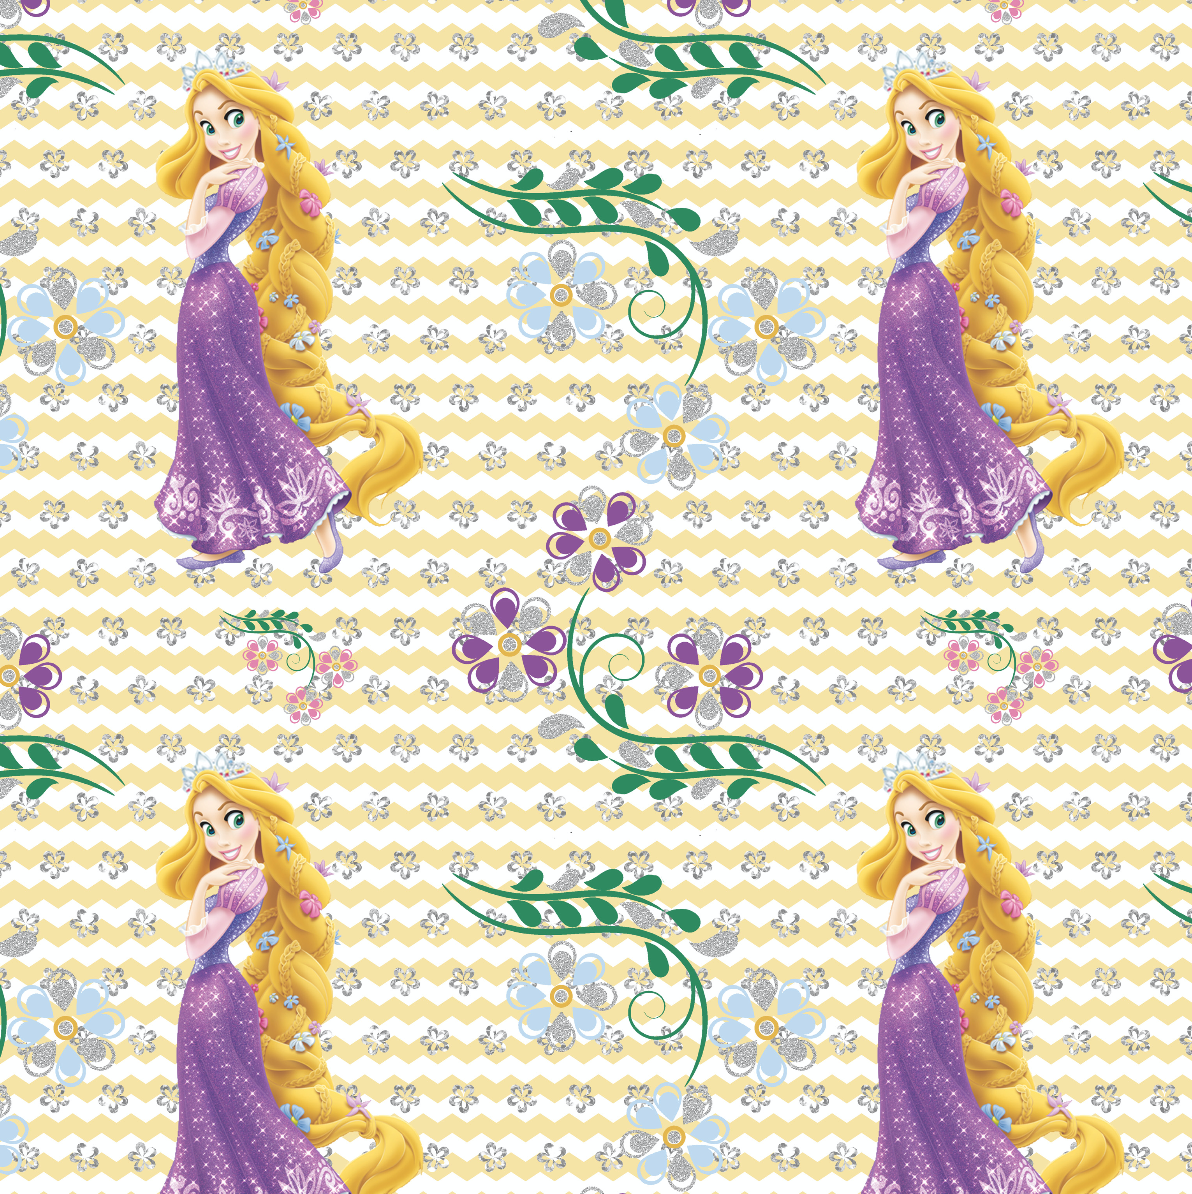 PRE ORDER - Rapunzel 2 Yellow - Digital Fabric Print